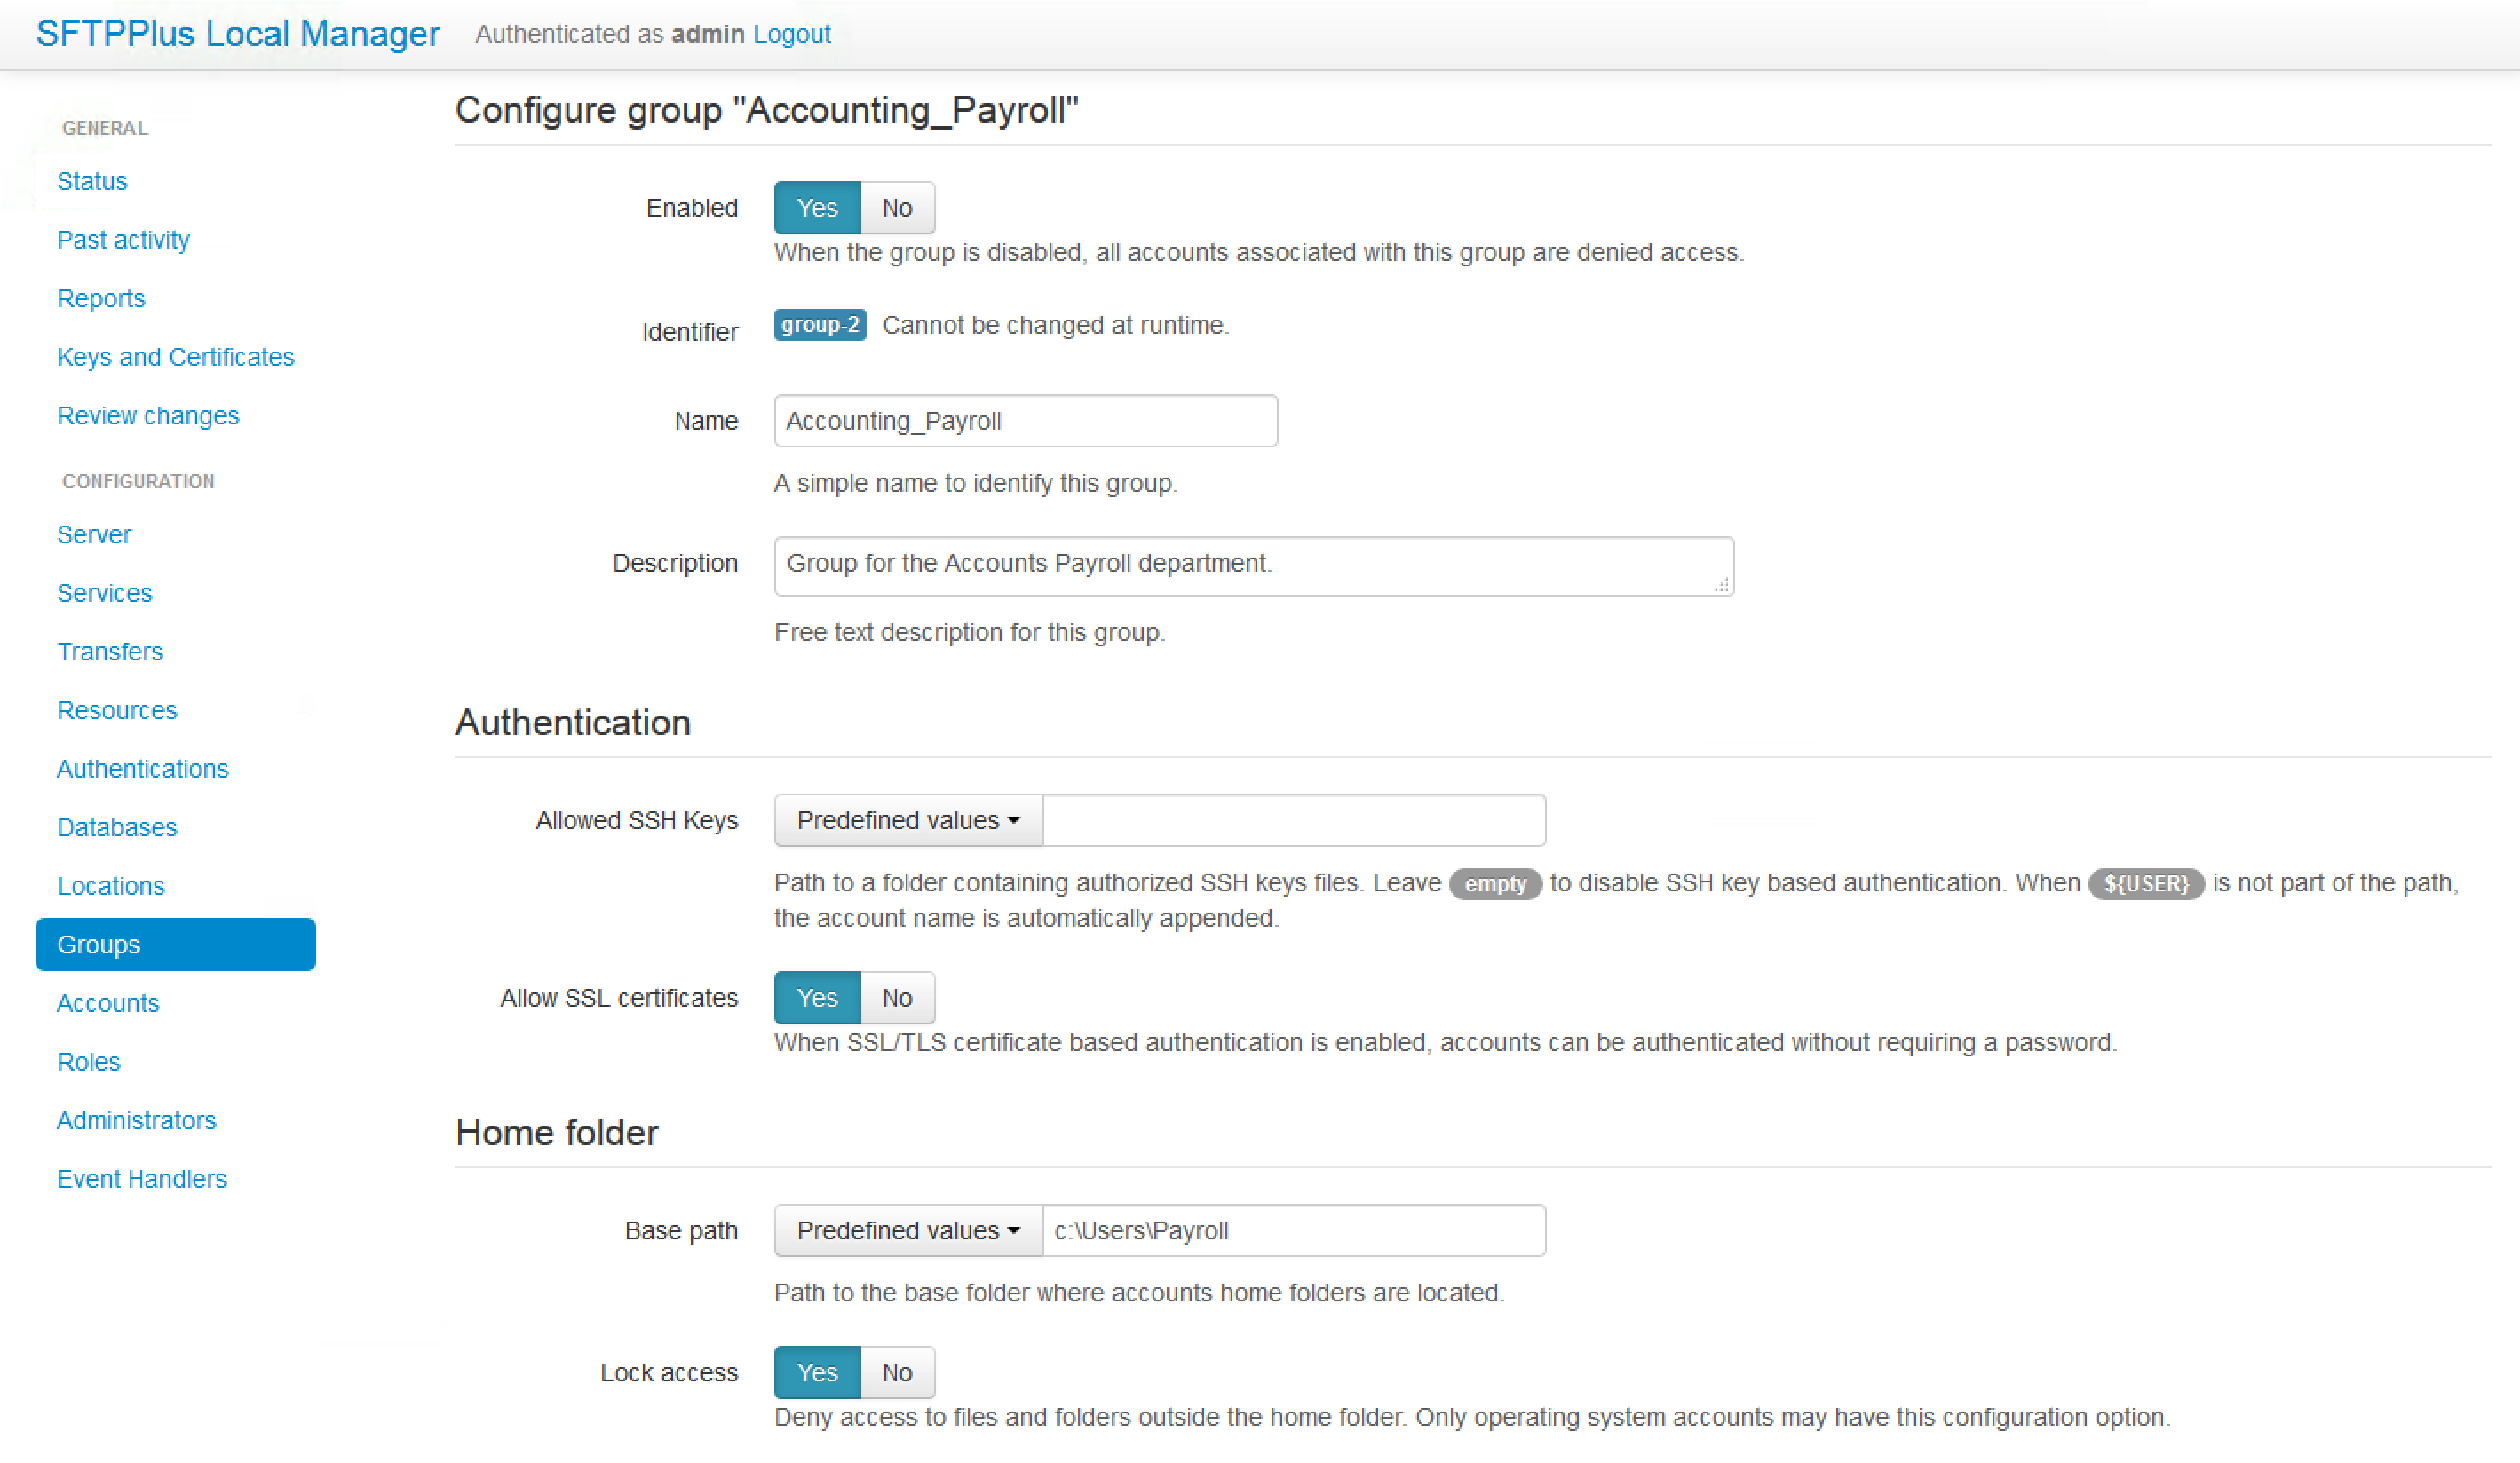 Group configuration options are modified in a similar way to any account configuration option.